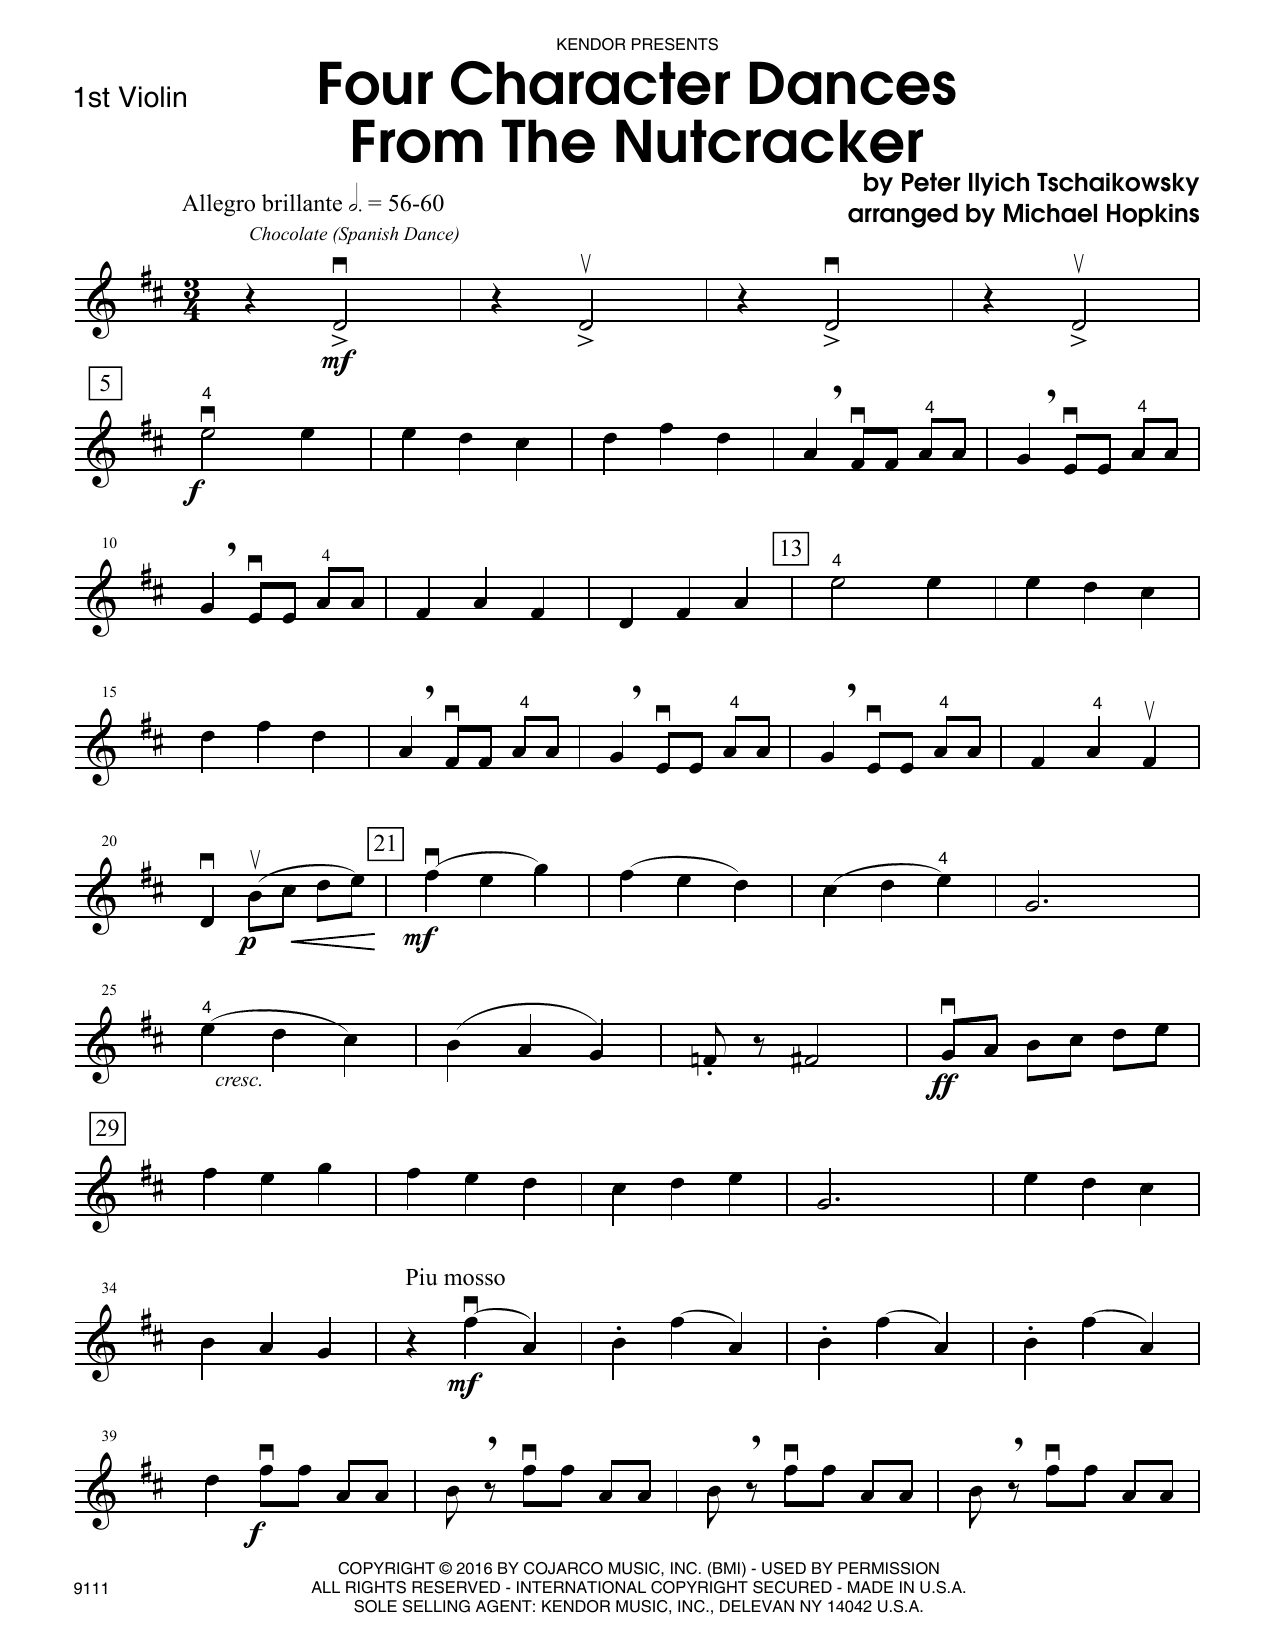 Four Character Dances From The Nutcracker - 1st Violin Sheet Music